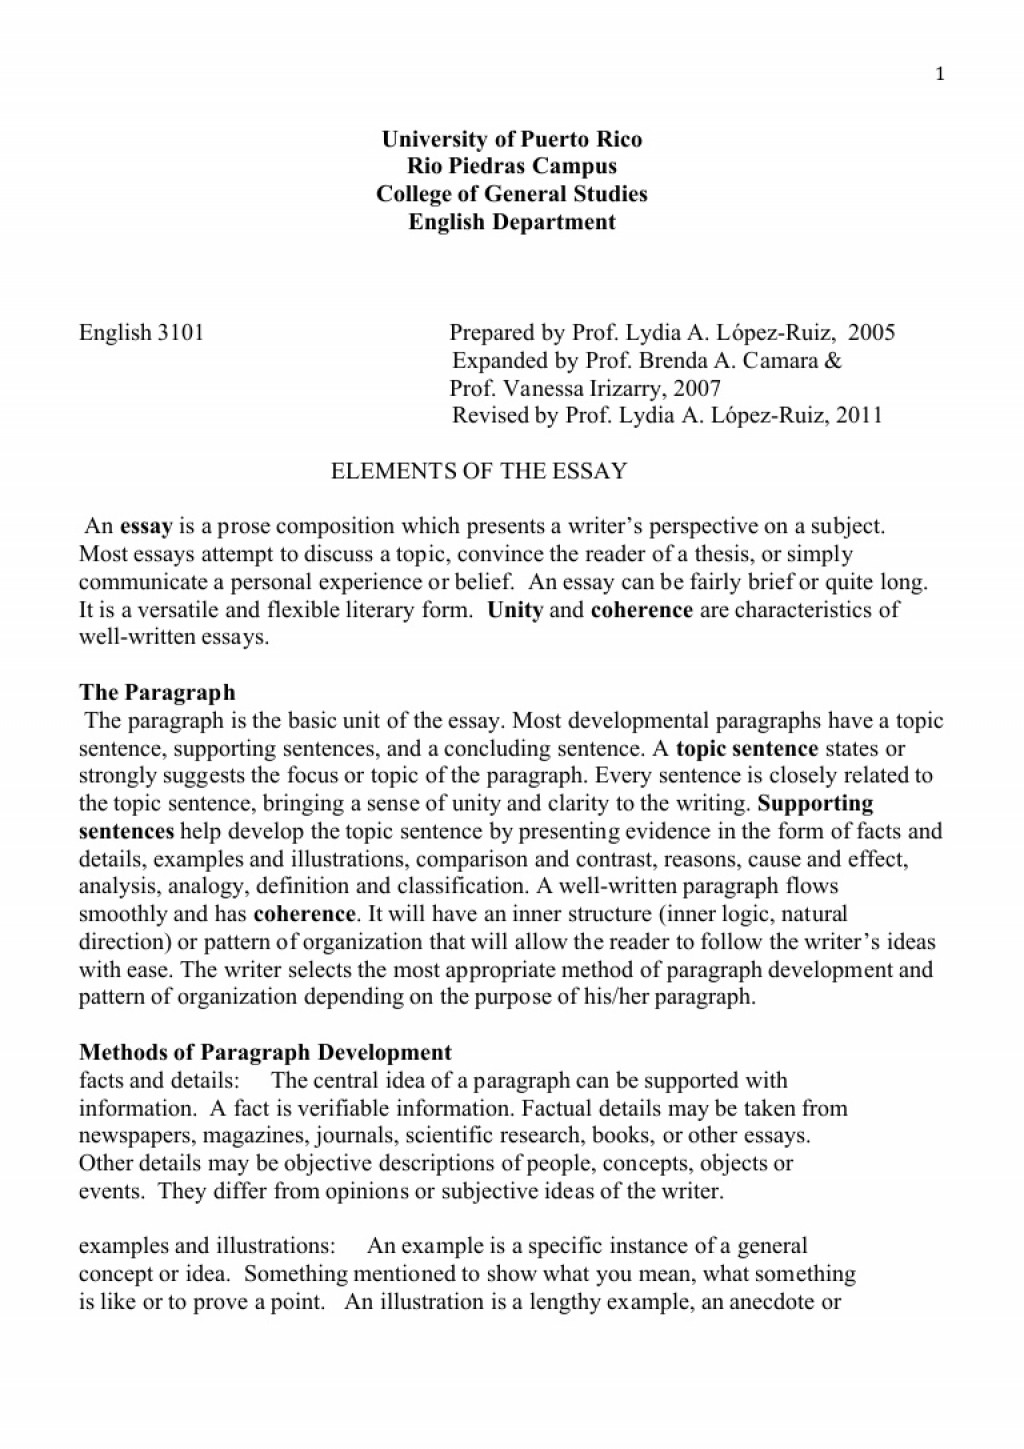 017 Essay Example Concept Topics Ll Vi Elementsoftheessay Phpapp01 Thumbnail Rare Explanation Explaining A Large